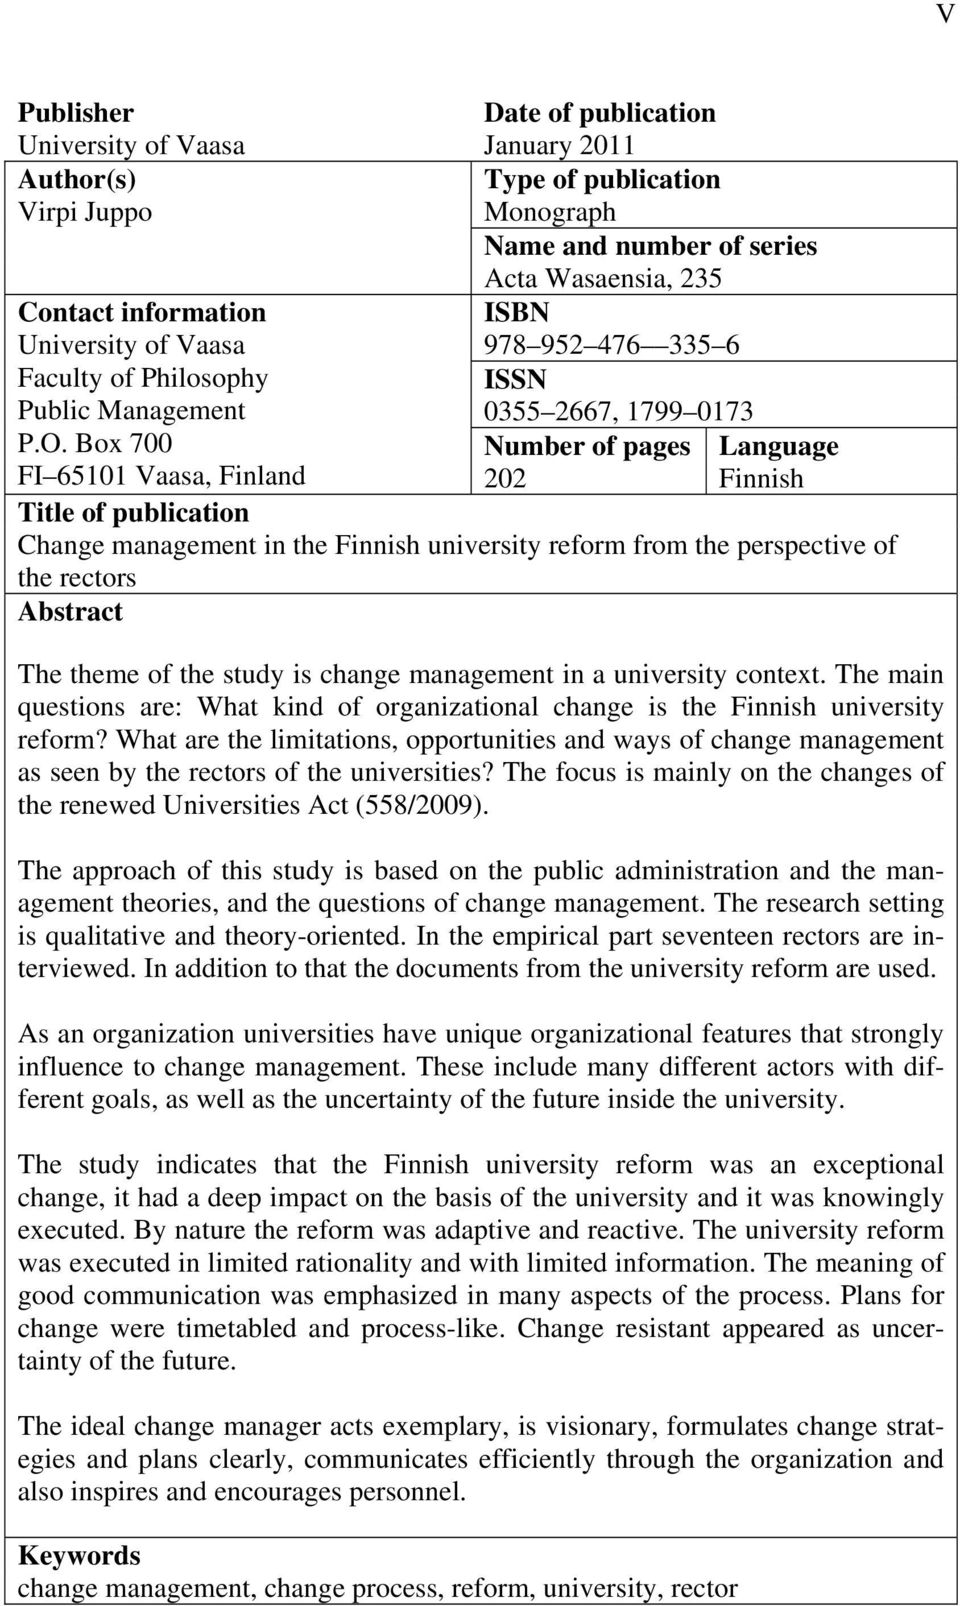 Box 700 978 952 476 335 6 ISSN 0355 2667, 1799 0173 Number of pages Language FI 65101 Vaasa, Finland 202 Finnish Title of publication Change management in the Finnish university reform from the